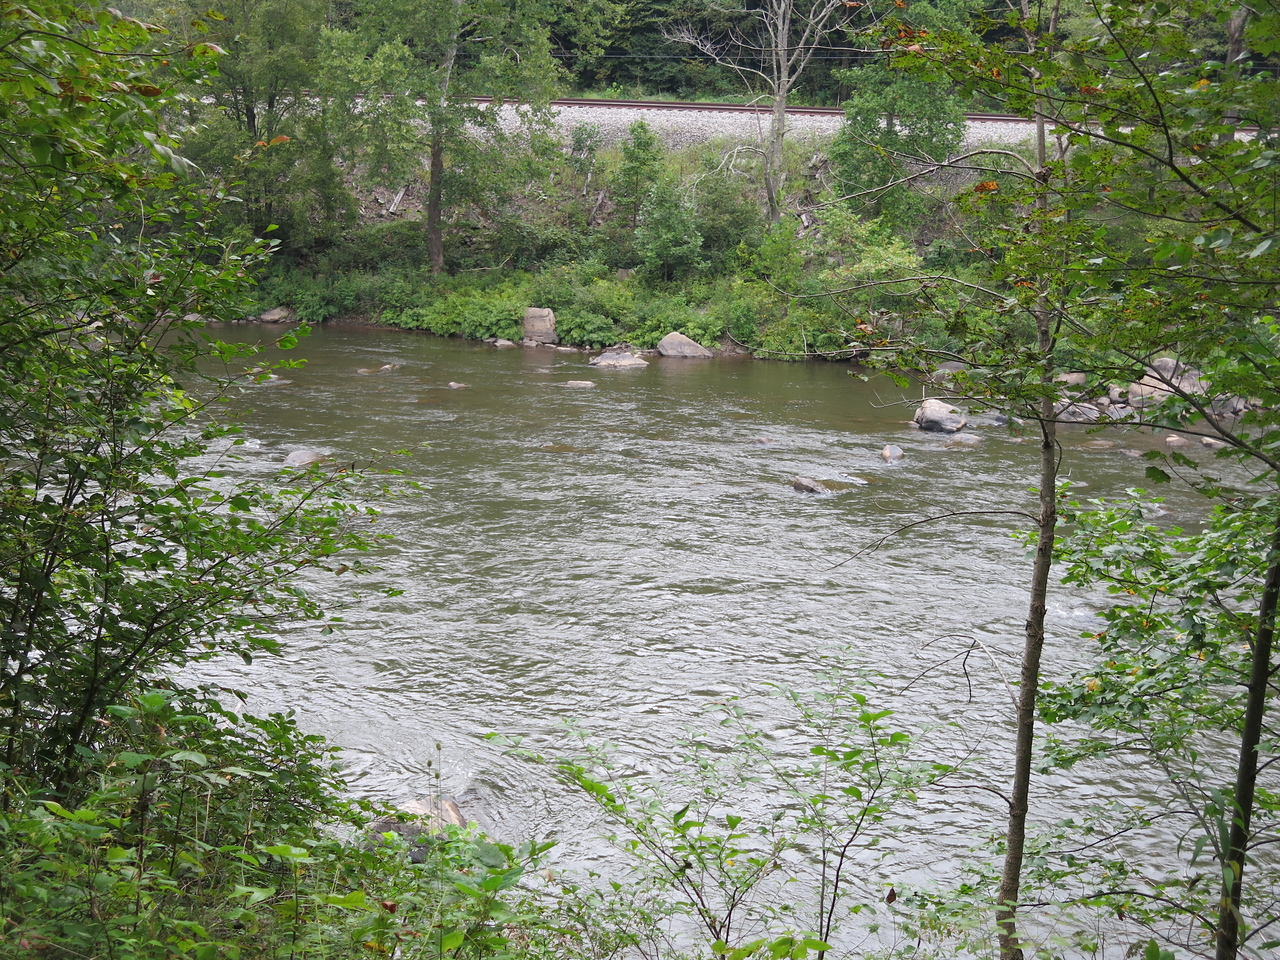 The Yough River and the activce CSX rail line on the opposite side of the river